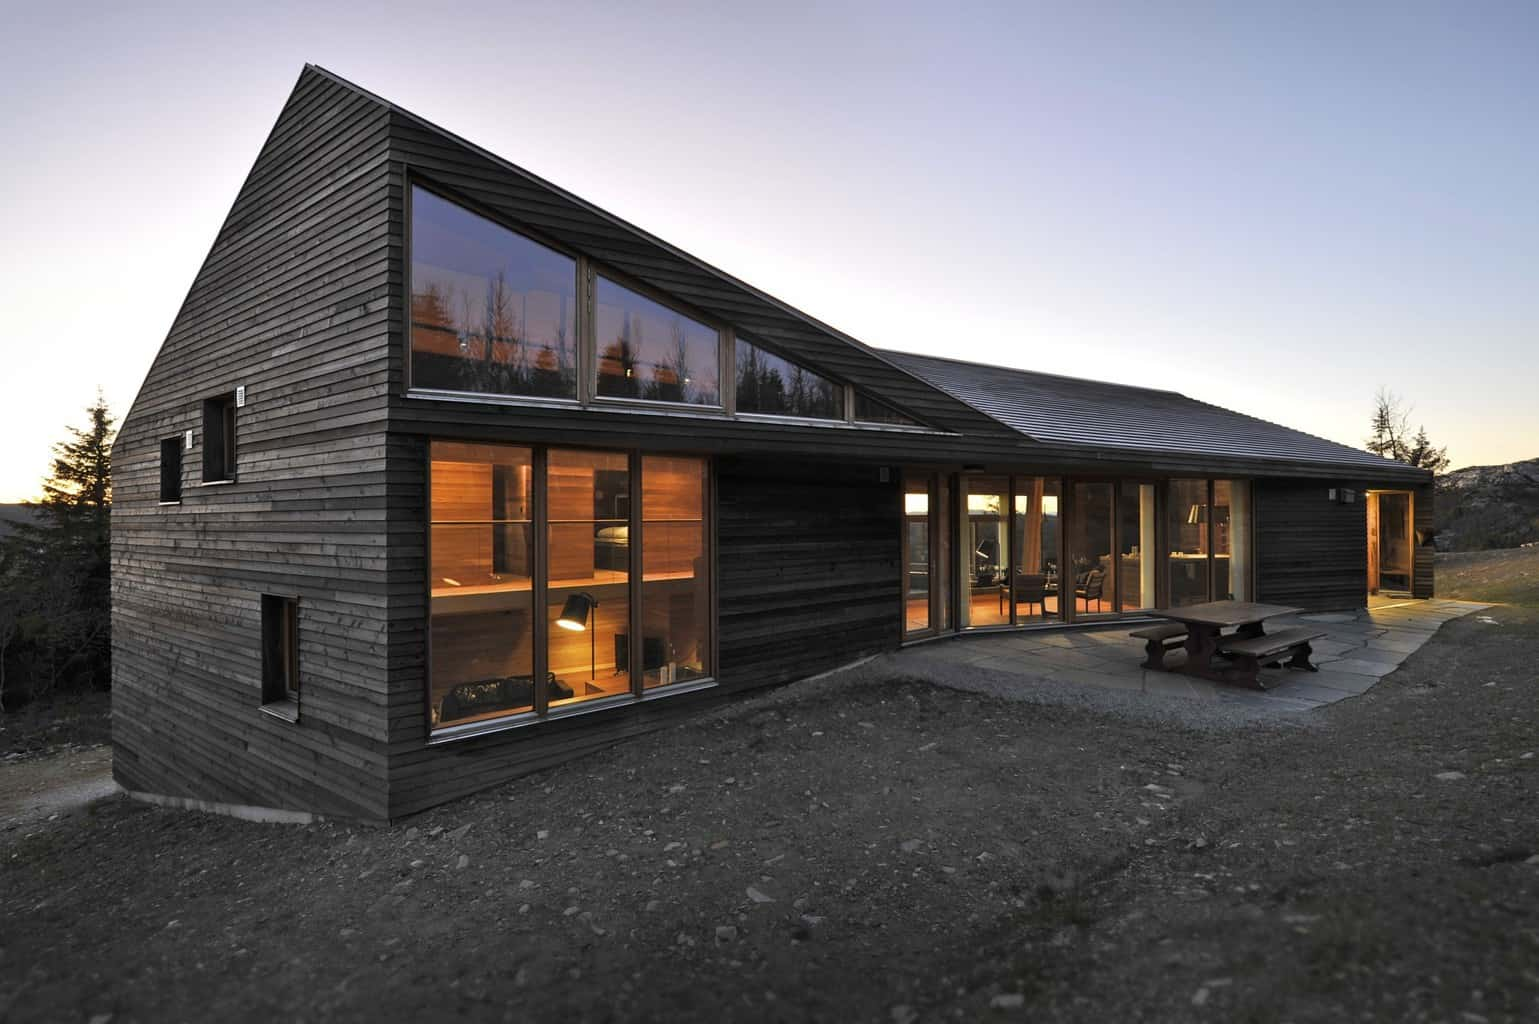 Twisted cabin architecture for home on the ski slopes of Norway